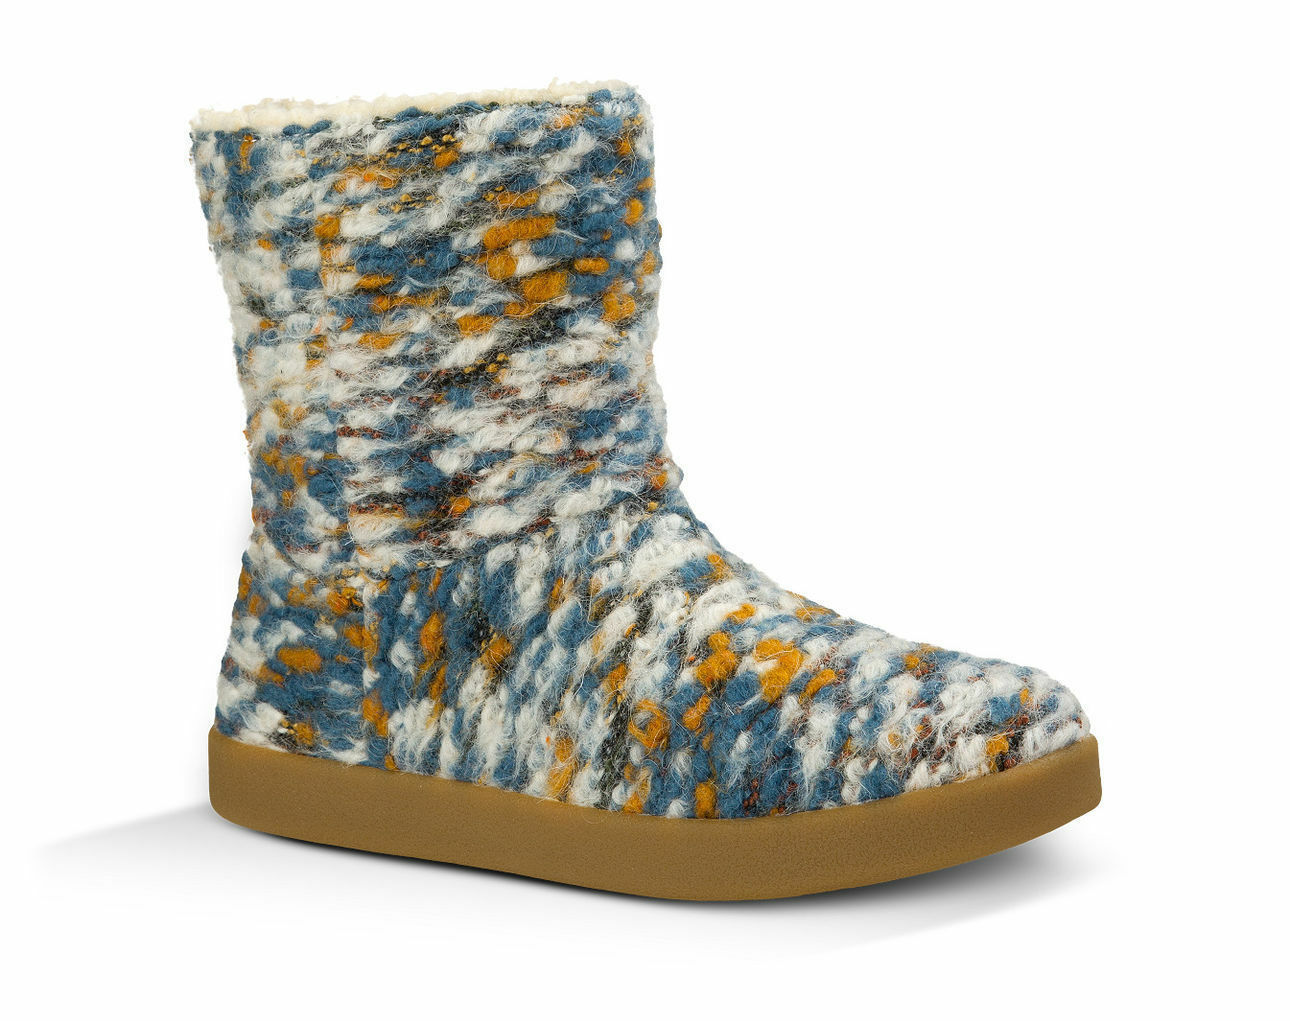 SANUK - 1016022 - DUSTY TEAL SPECKLE - Women's Short Boots - Multi-color -Size 5